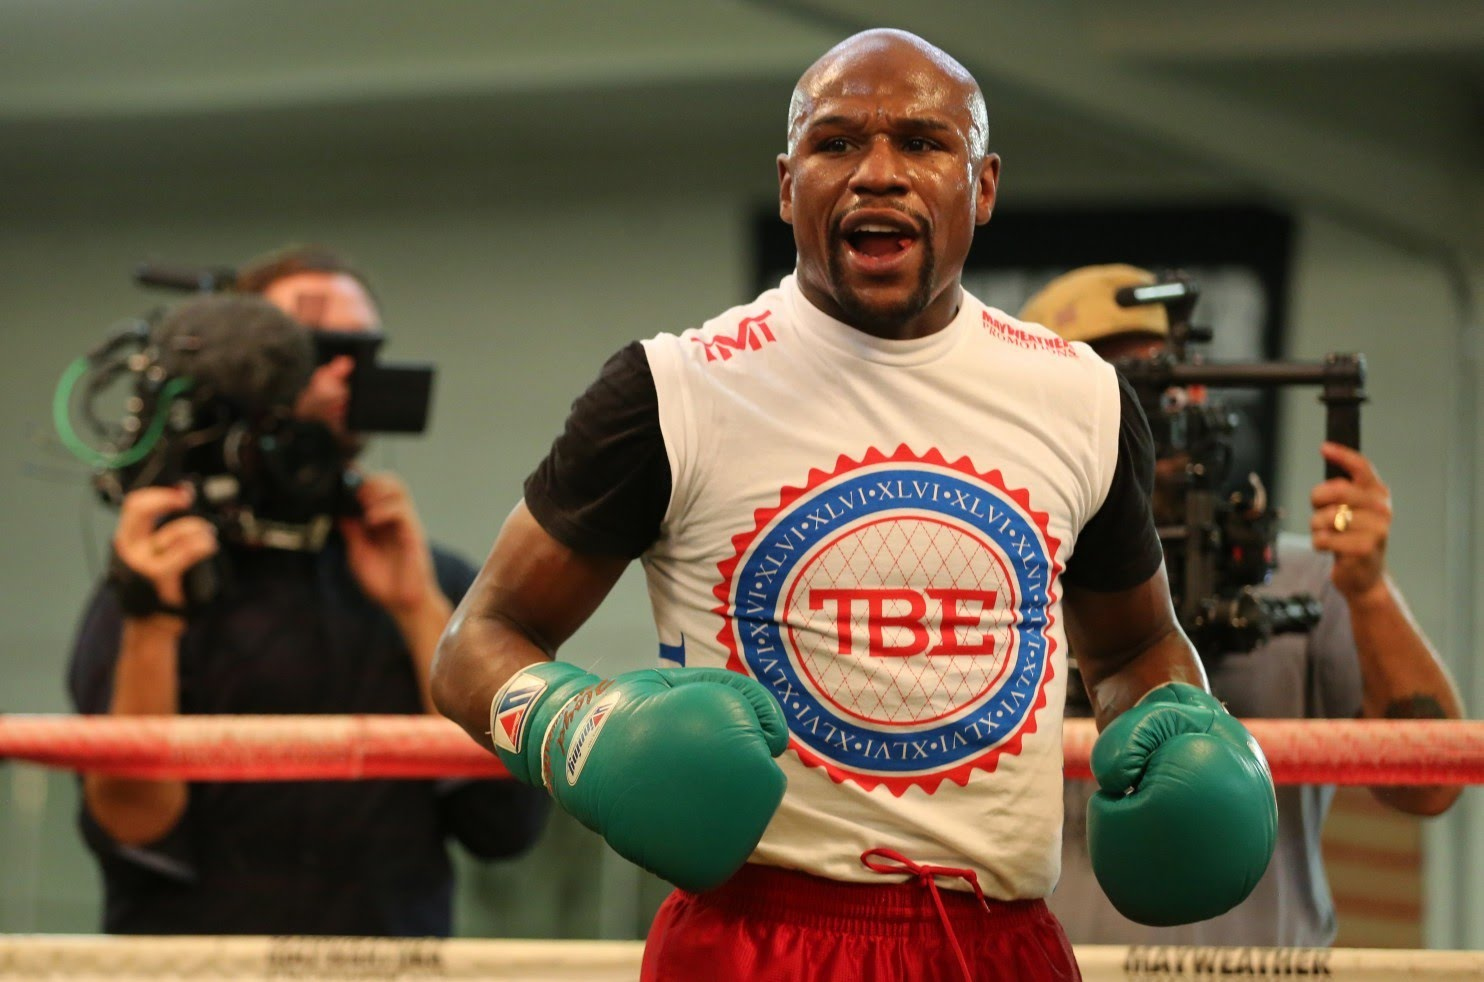 Floyd Mayweather Training: 5 Lessons From TBE • Strength ...